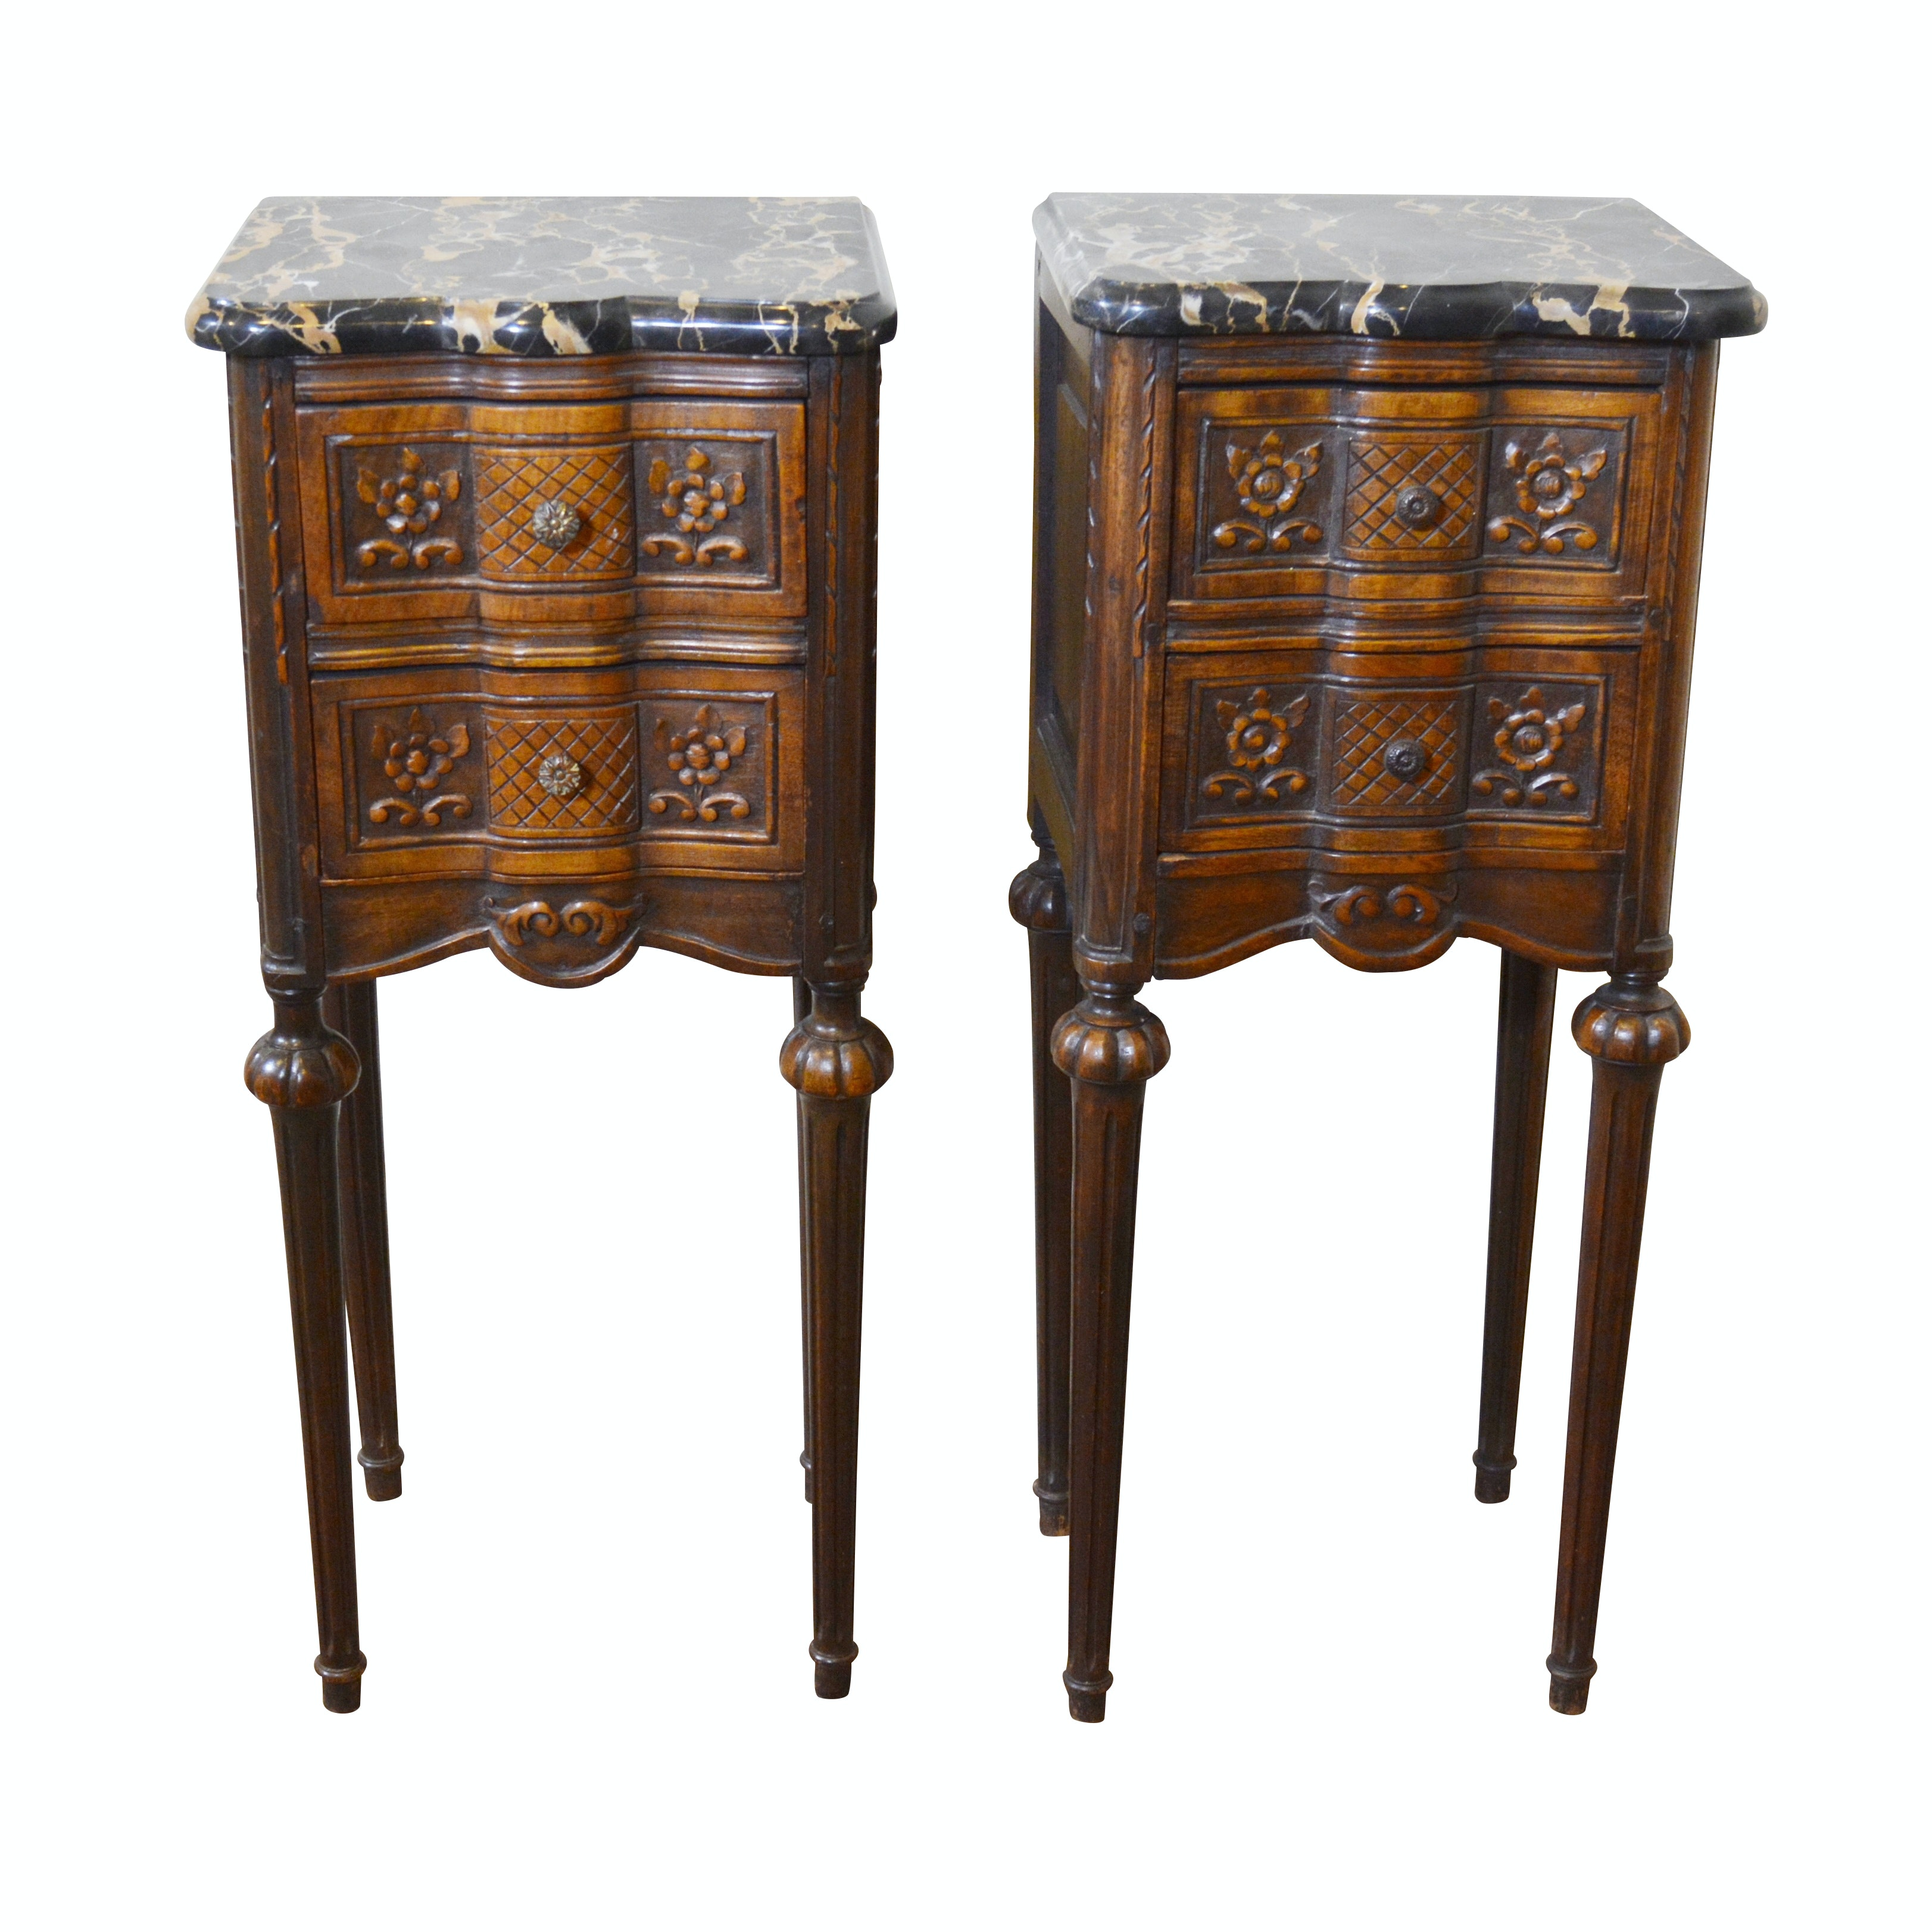 Pair of Louis XVI Style Walnut Marble Top Bedside Tables, Early 20th Century